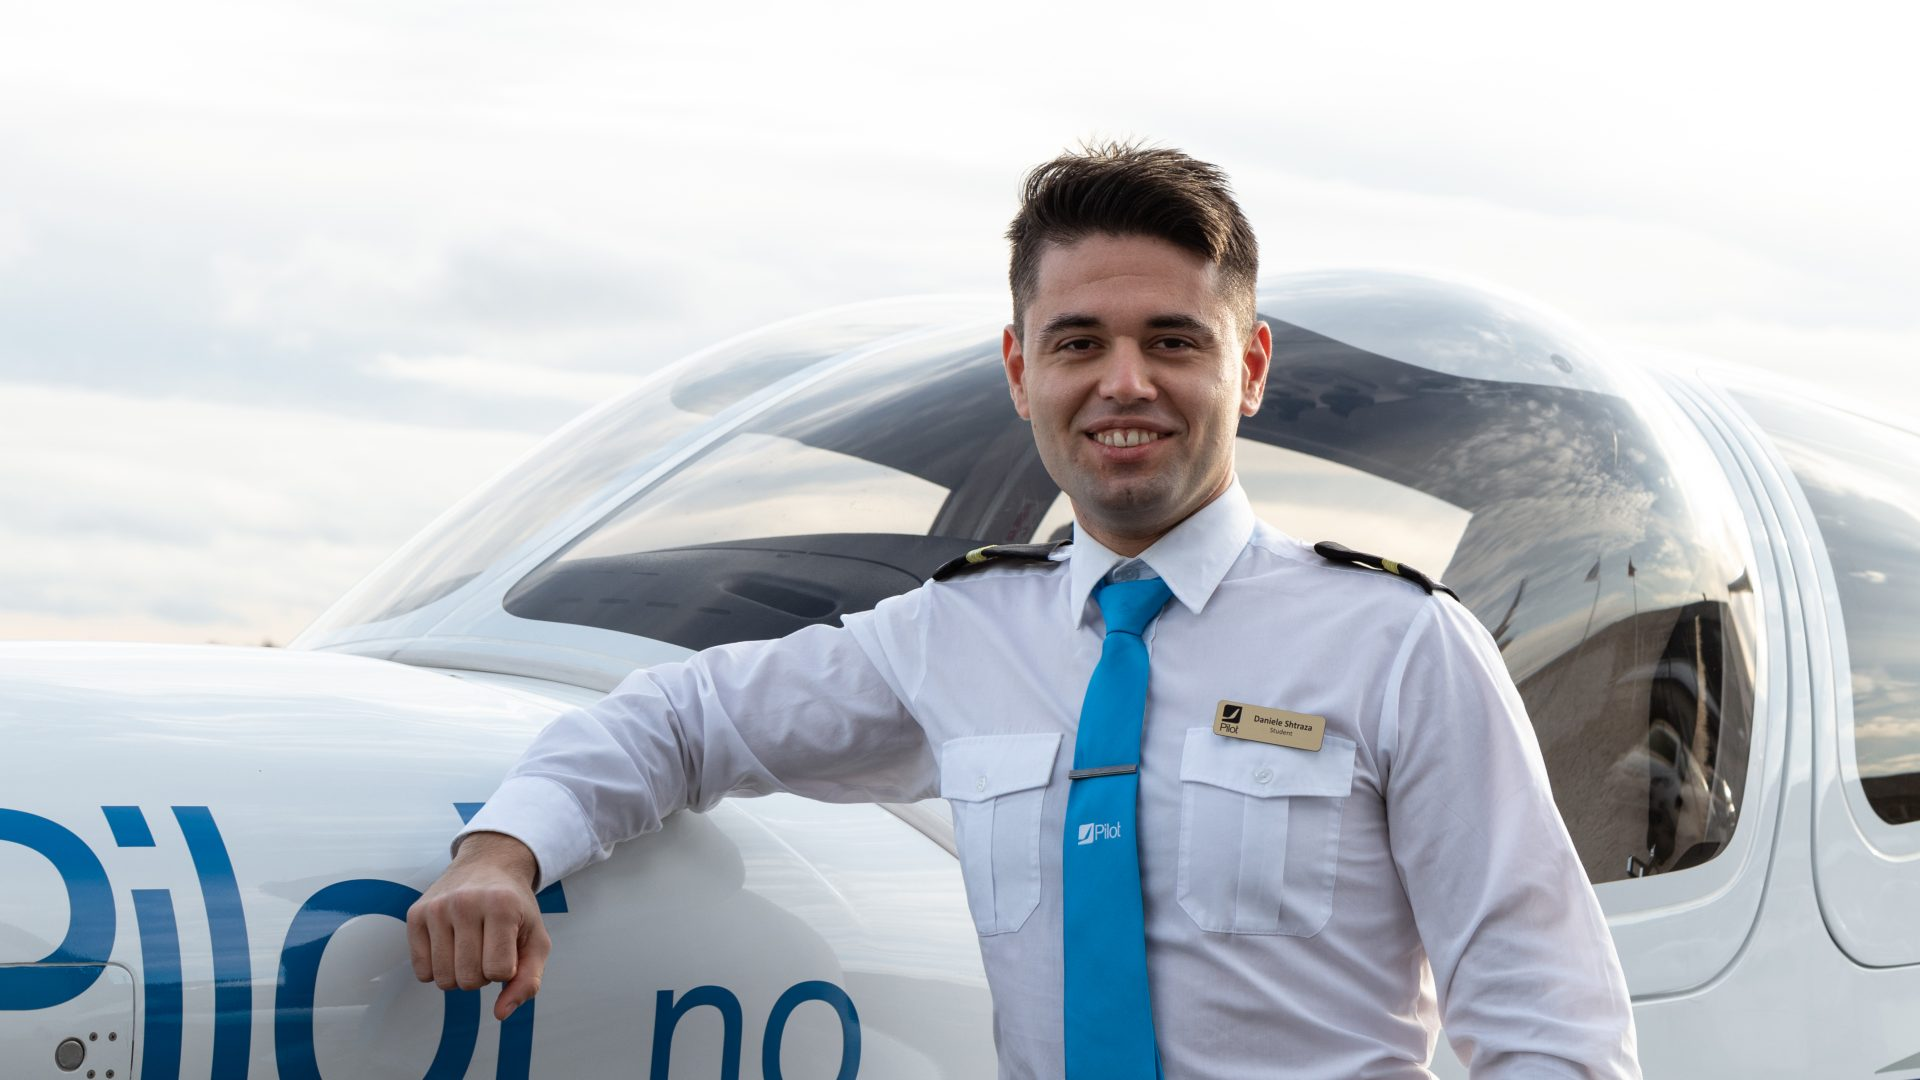 Student Shtraza is standing beside a Diamond DA42